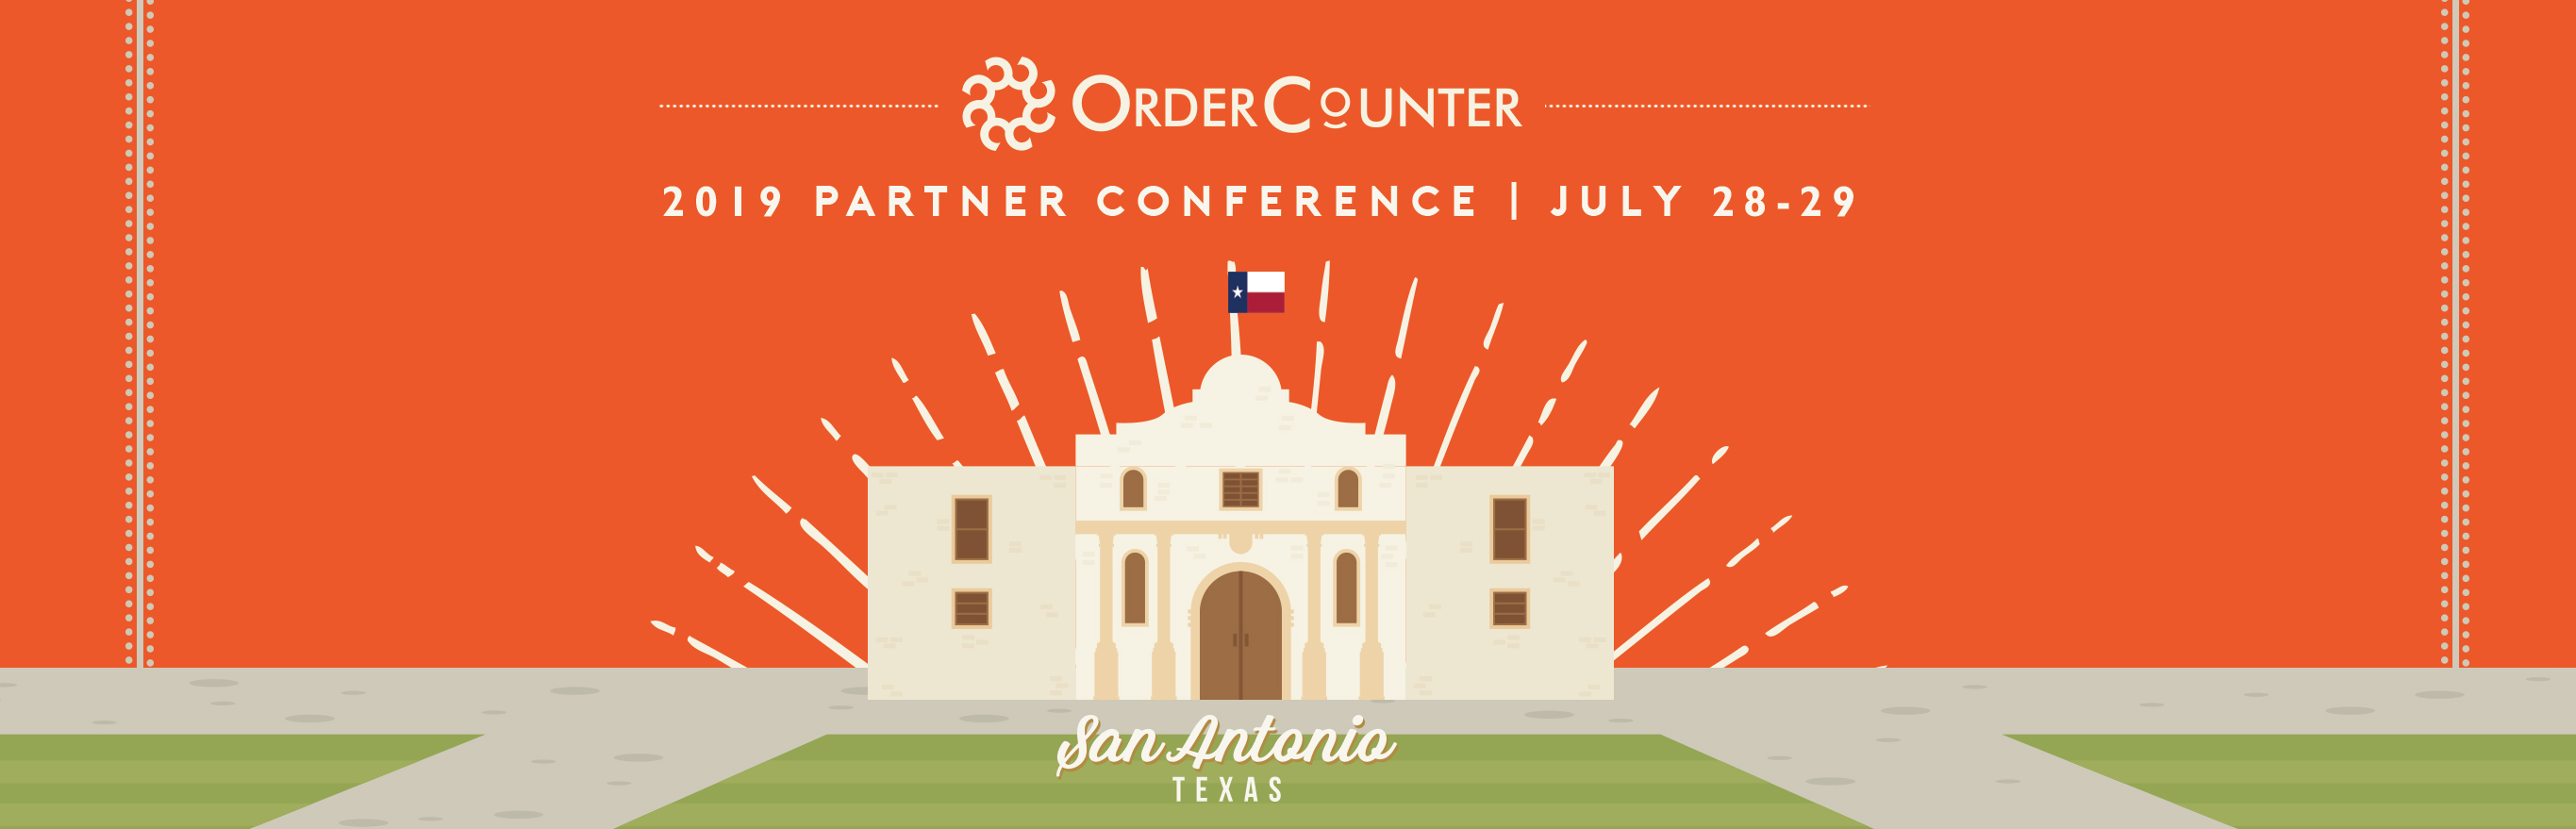 OrderCounter Cloud Hybrid POS- partner conference point of sale system Self-Serve Kiosks